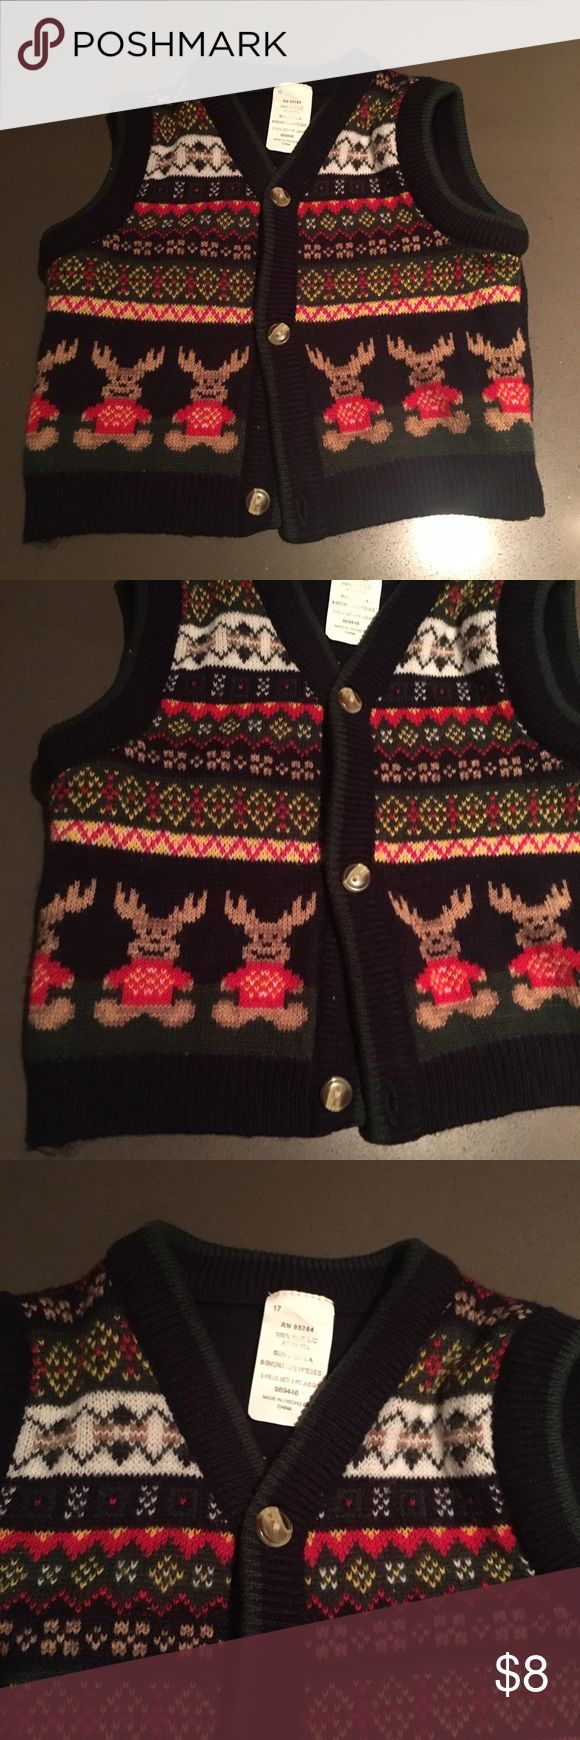 Vintage Baby Ugly Christmas Sweater Vest 6 9 month In overall good vintage condition. Check out our closet for great bundle offers! Price firm unless bundled! Vintage Jackets & Coats Vests